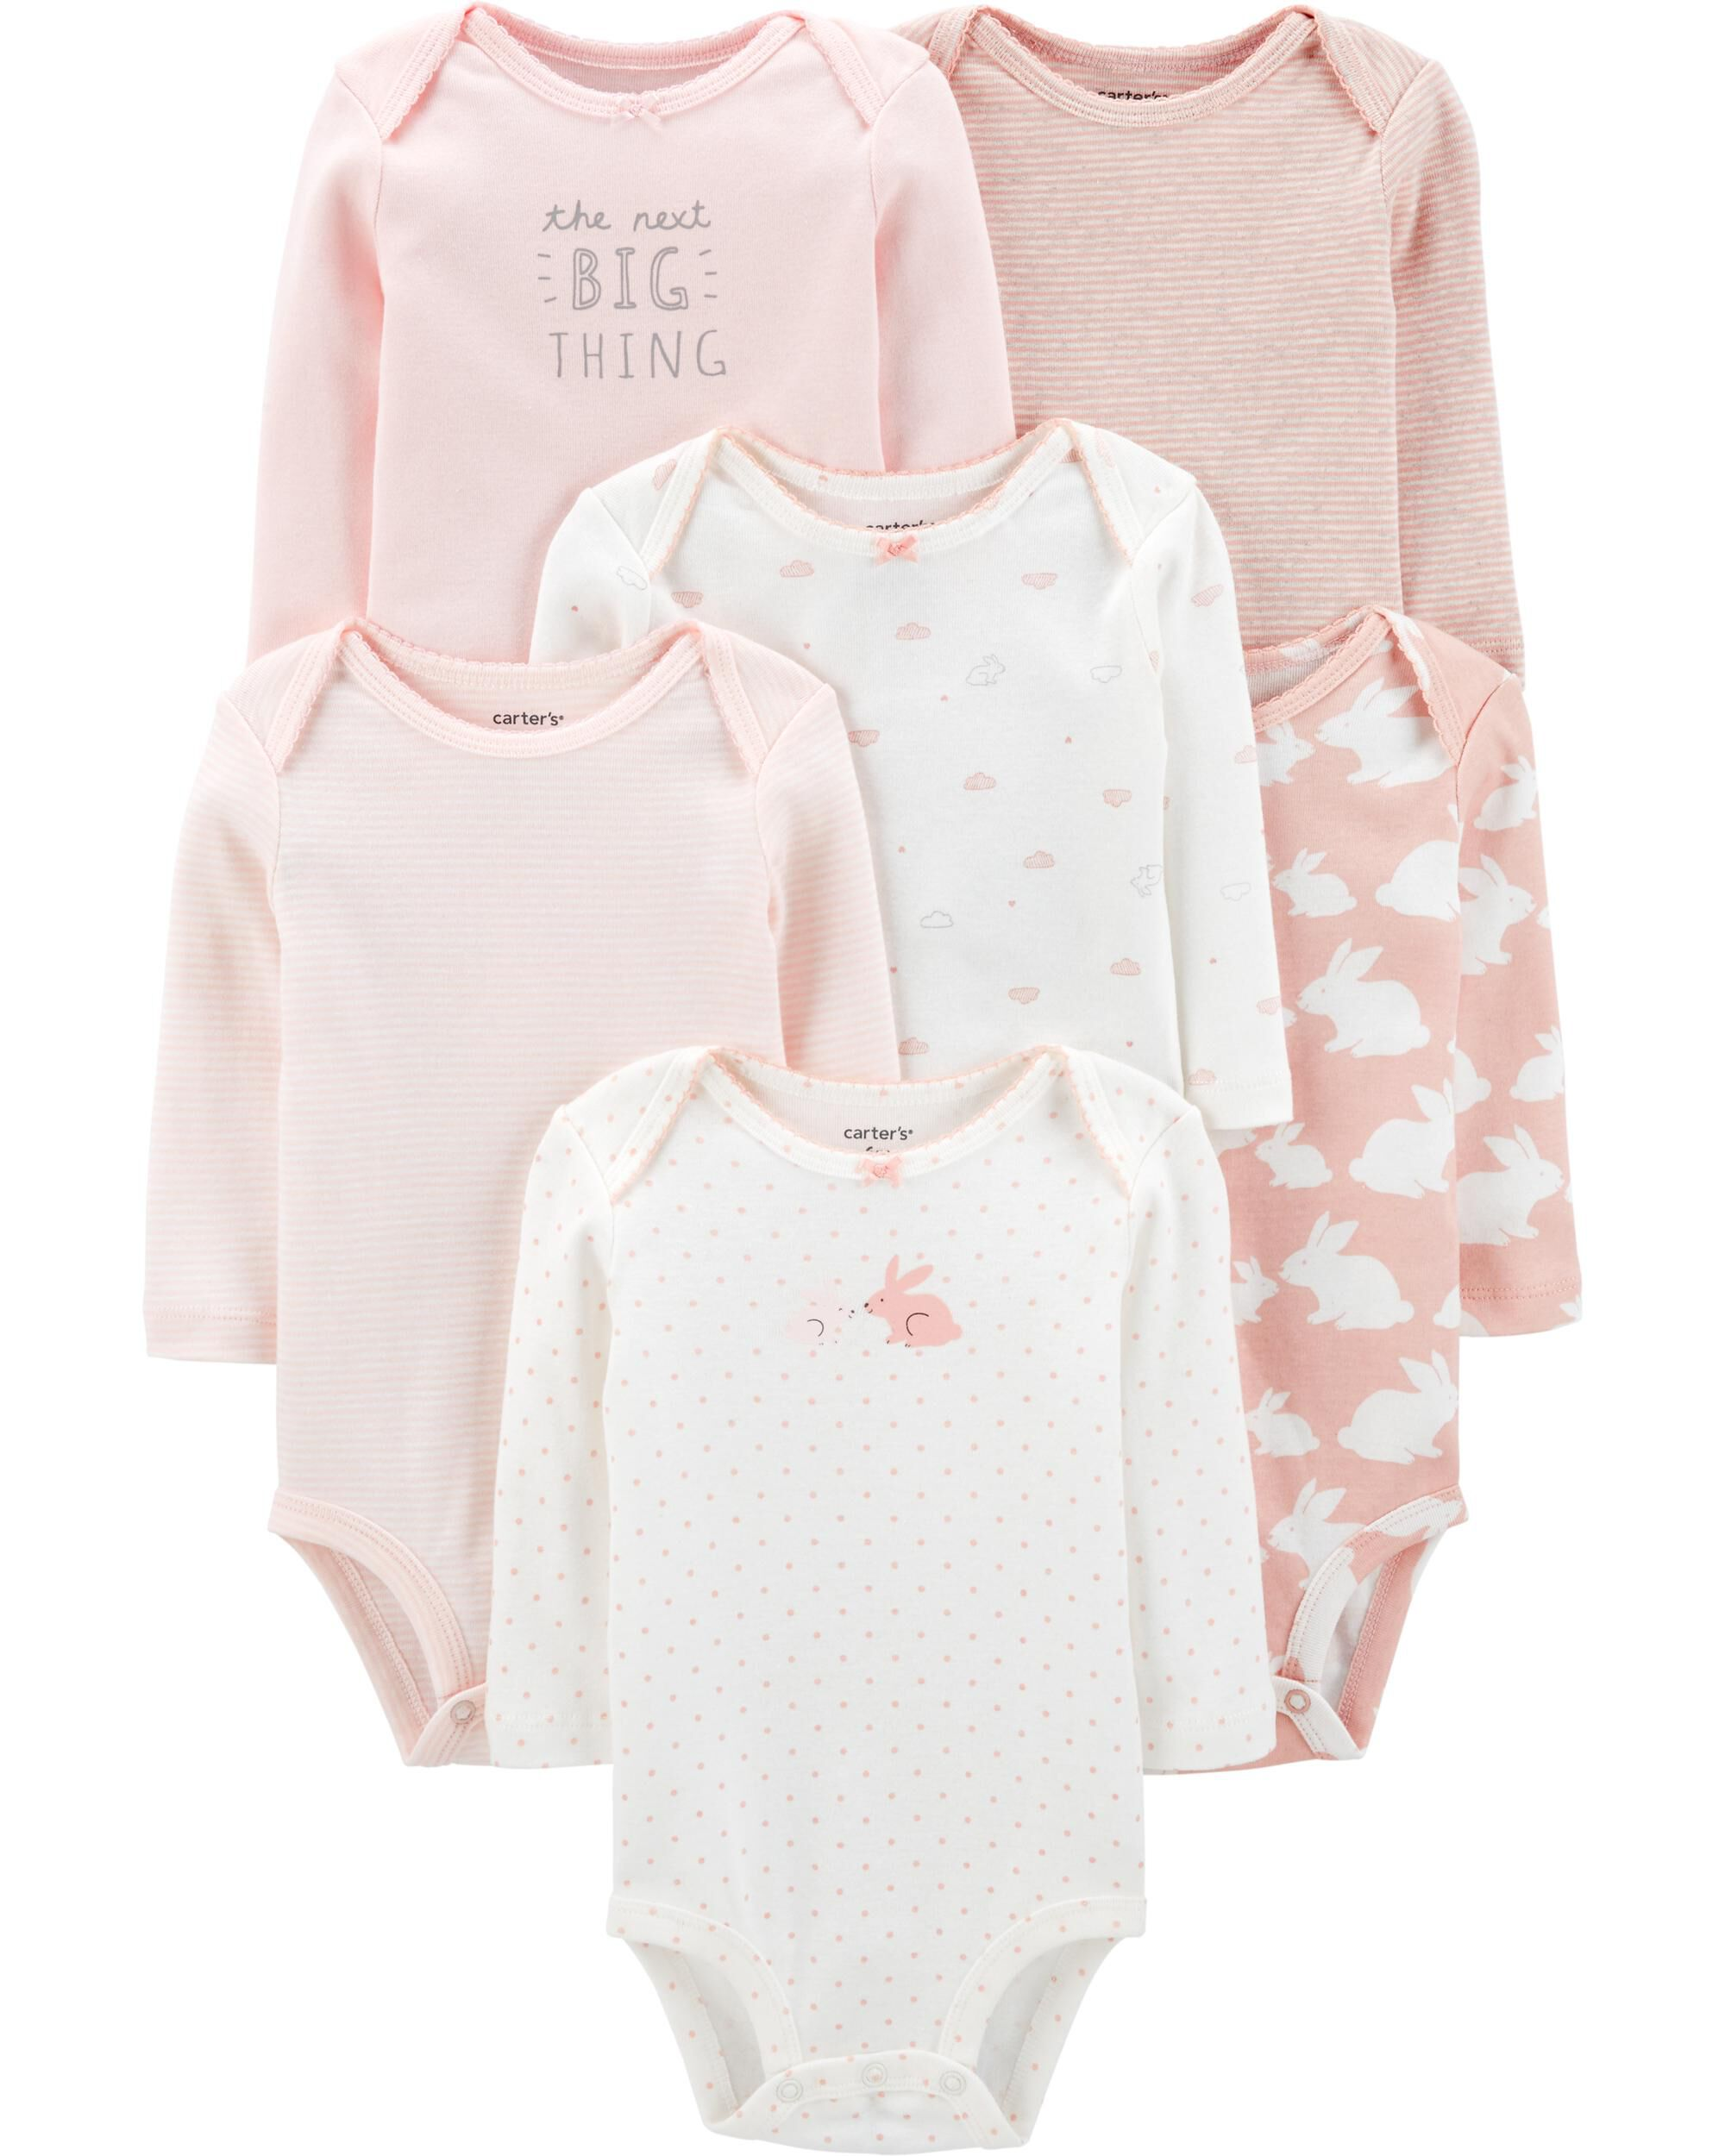 Outfits & Sets First Impressions Baby Girl Pink Black Set New 3-6 Months Nwt Cheetah Print High Quality And Inexpensive Baby & Toddler Clothing